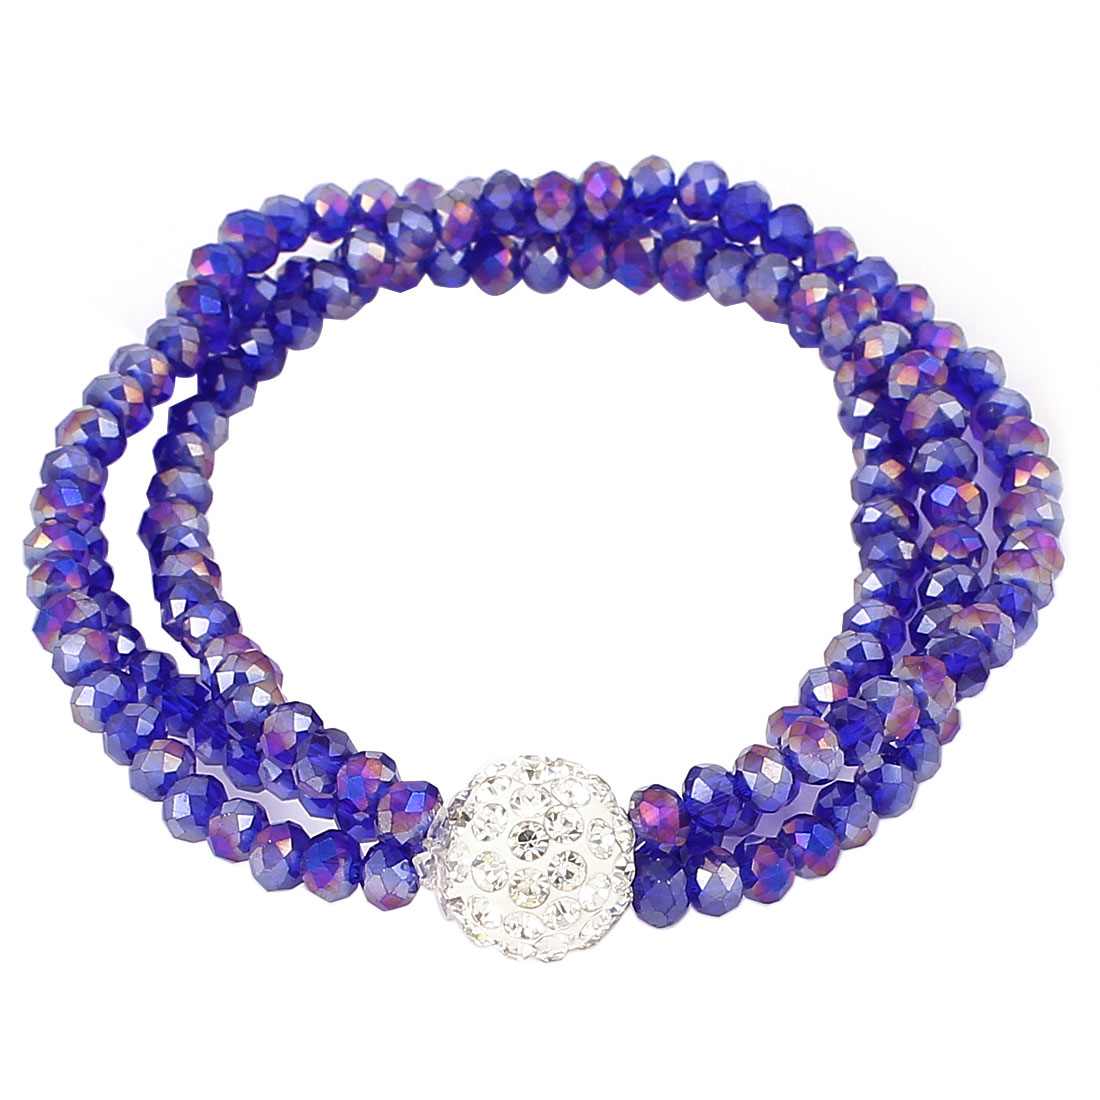 Lady Jewelry 12mm Faux Crystal Ball Beaded Stretch Bangle Bracelet Blue